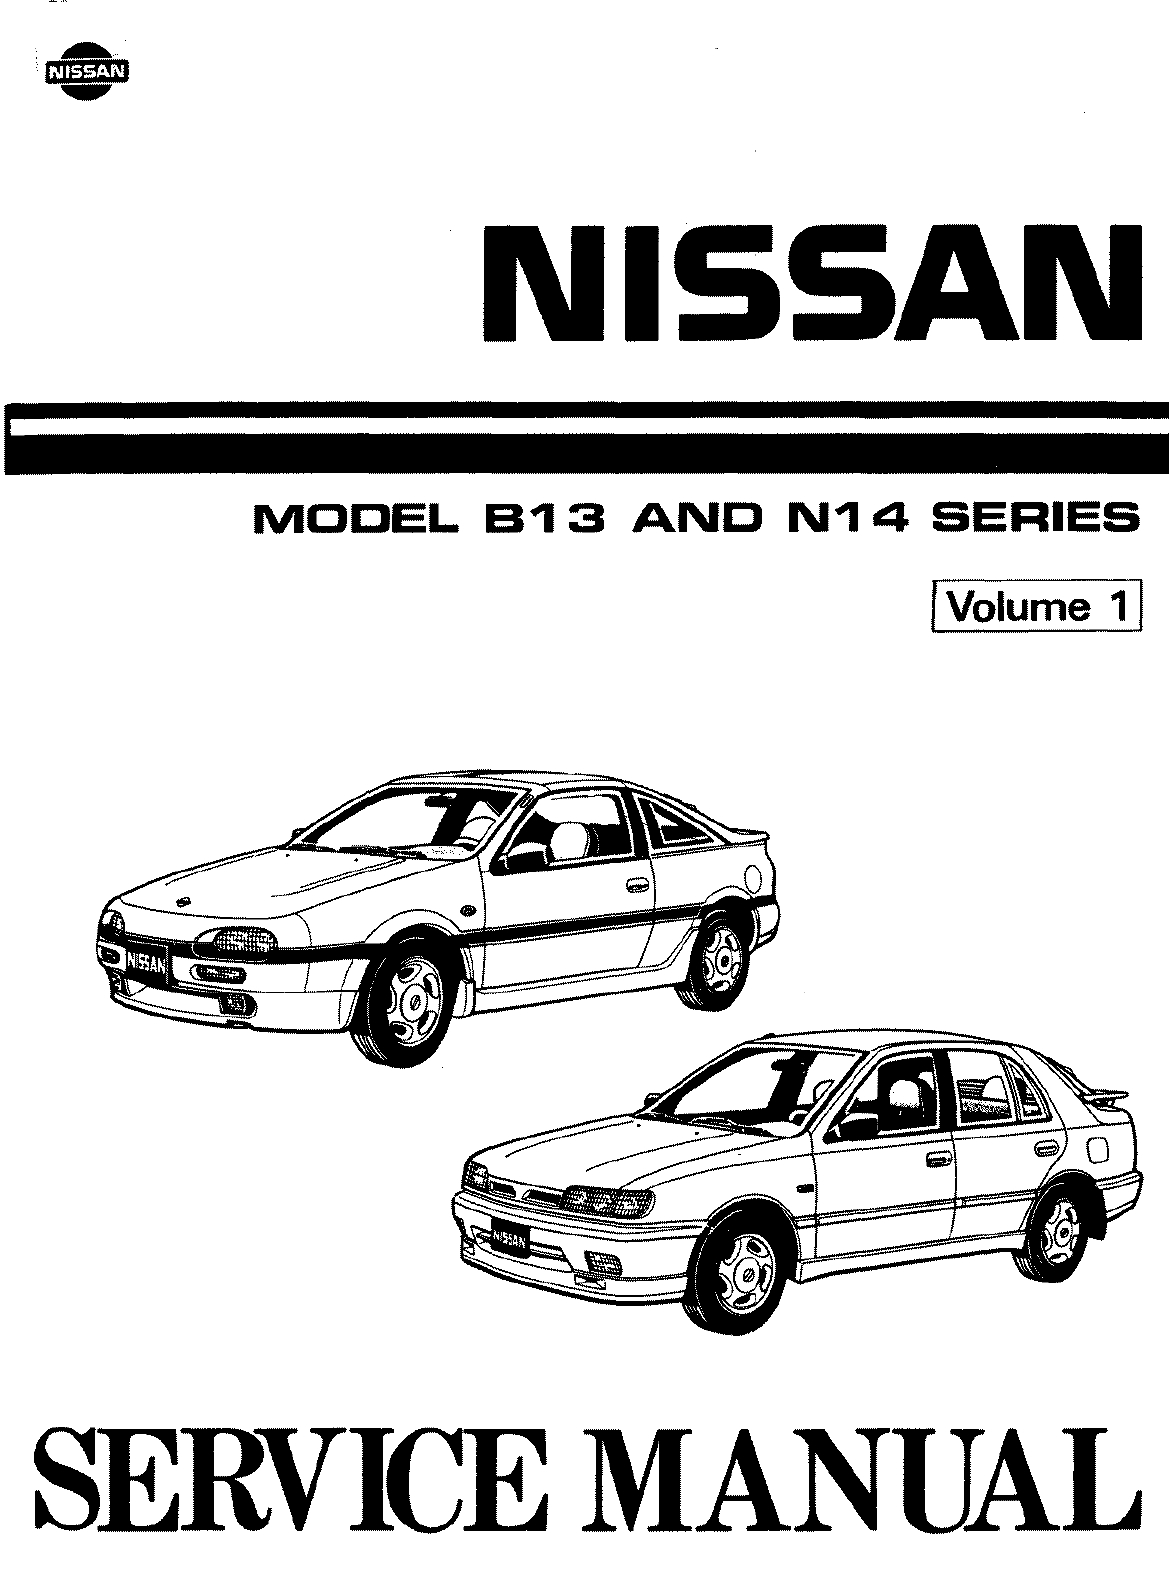 See our other Nissan 100 NX Manuals: Nissan 100 NX 1990 Workshop Manual